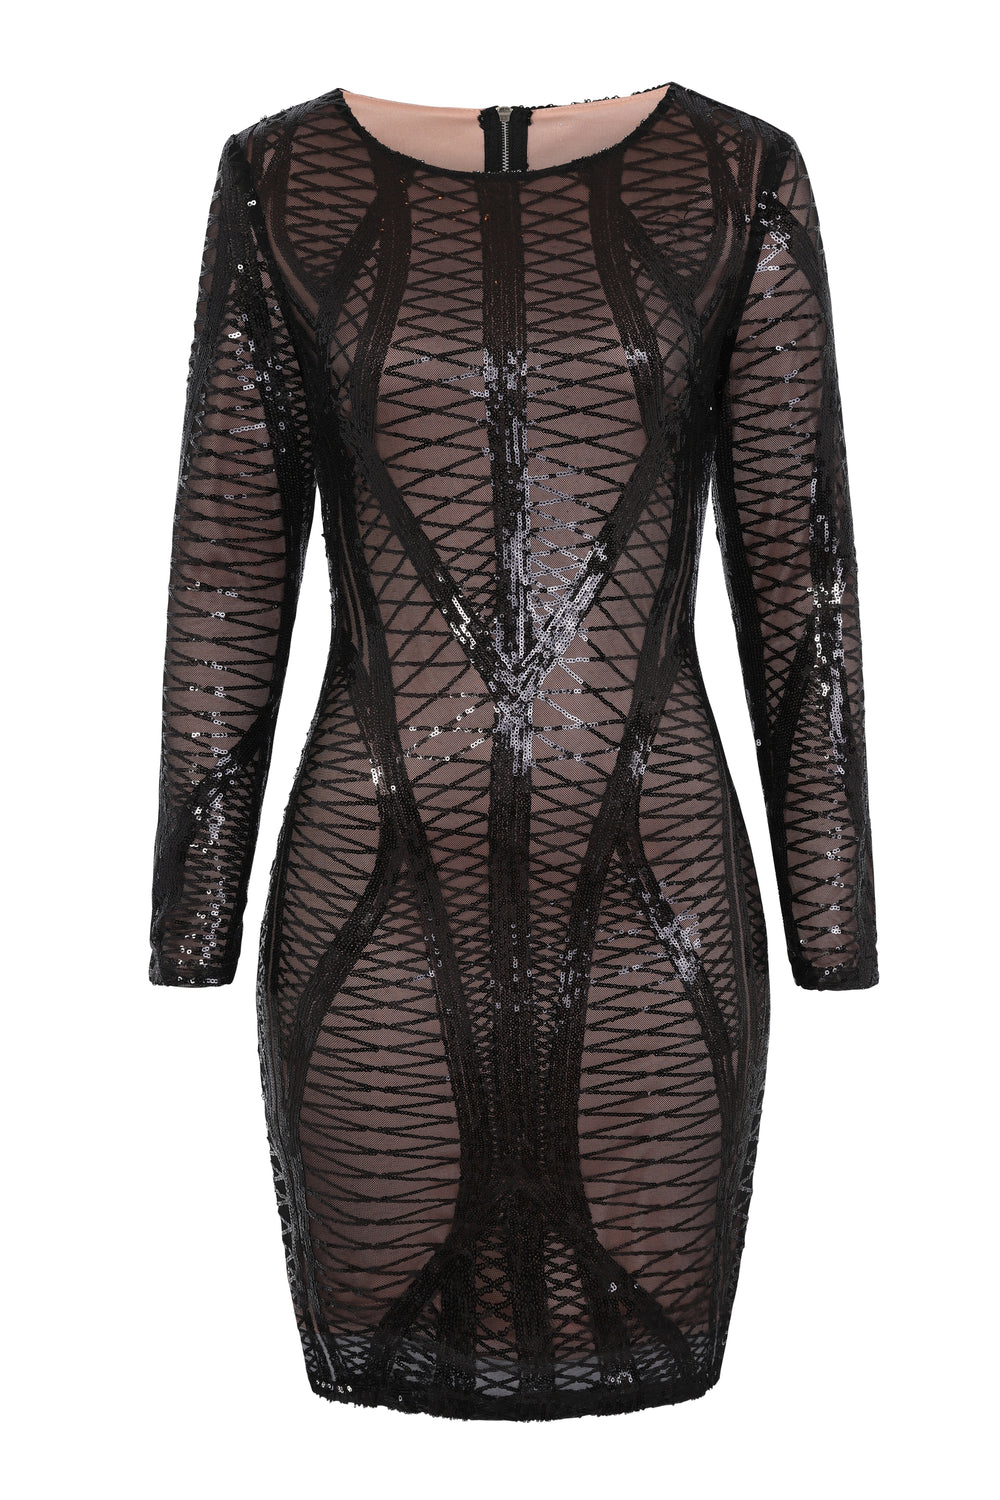 Hilton Luxe Black Dark Nude Cage Sequin Bandage Bodycon Illusion Dress